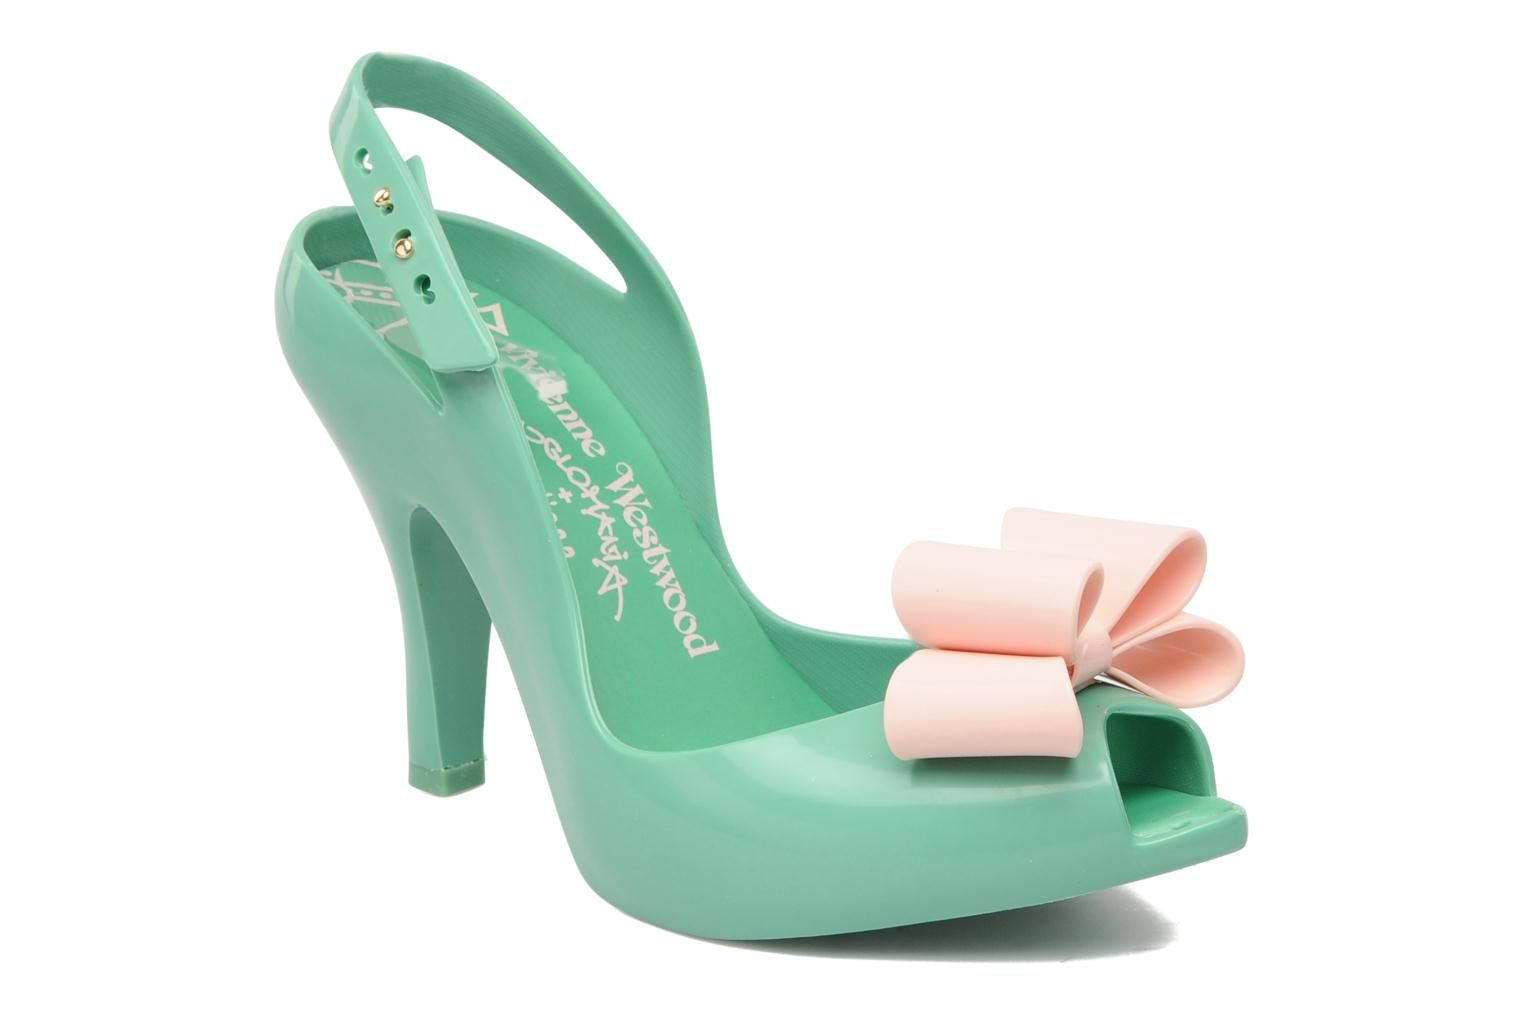 Vivienne Westwood Anglomania + lady Dragon Sp Ad Green Pink 50961